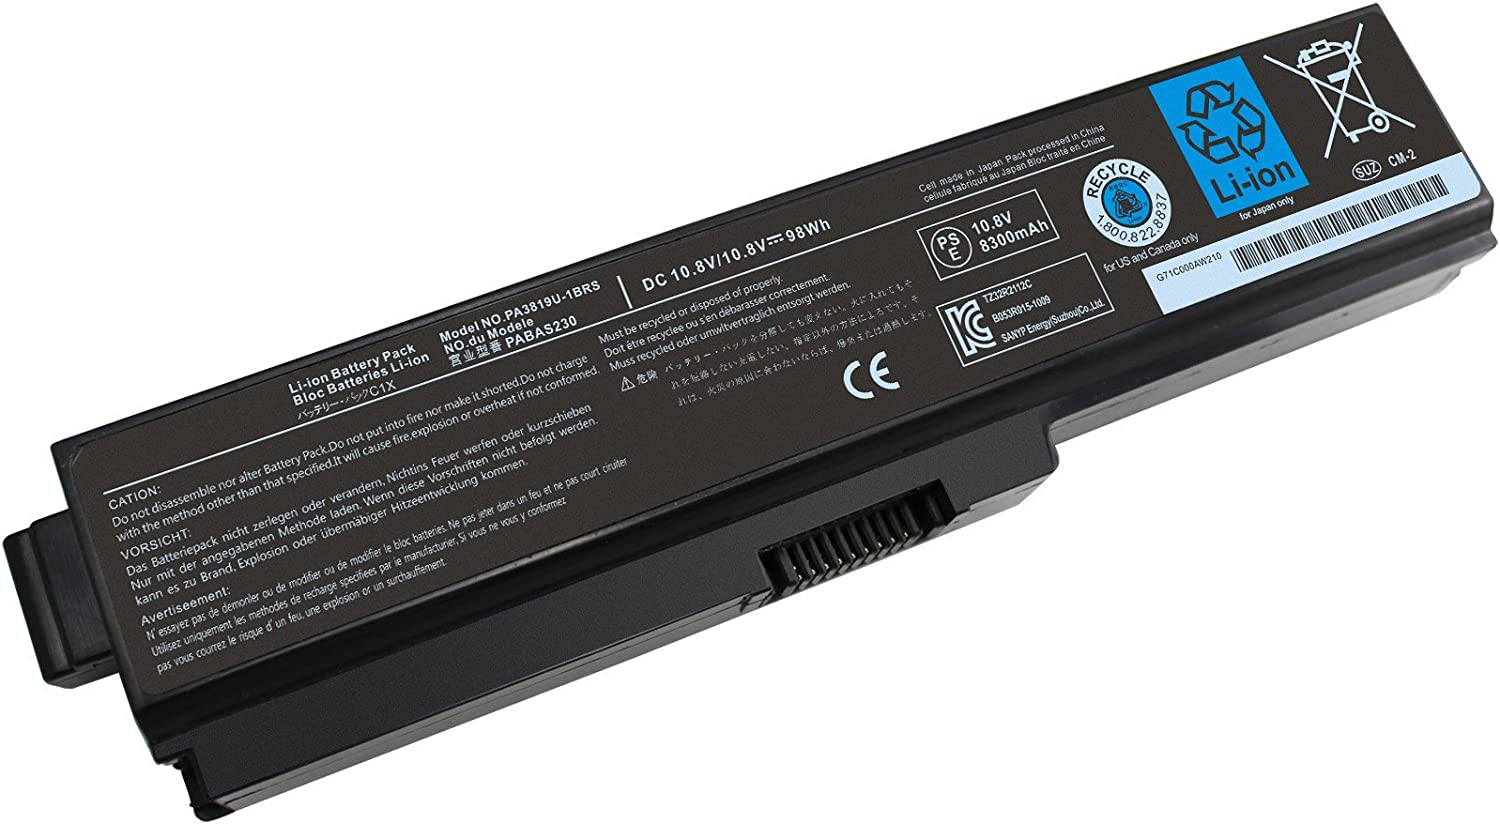 PA3819U-1BRS PA3817U-1BRS Laptop Battery Finally popular brand Compatible Special Campaign for Toshiba